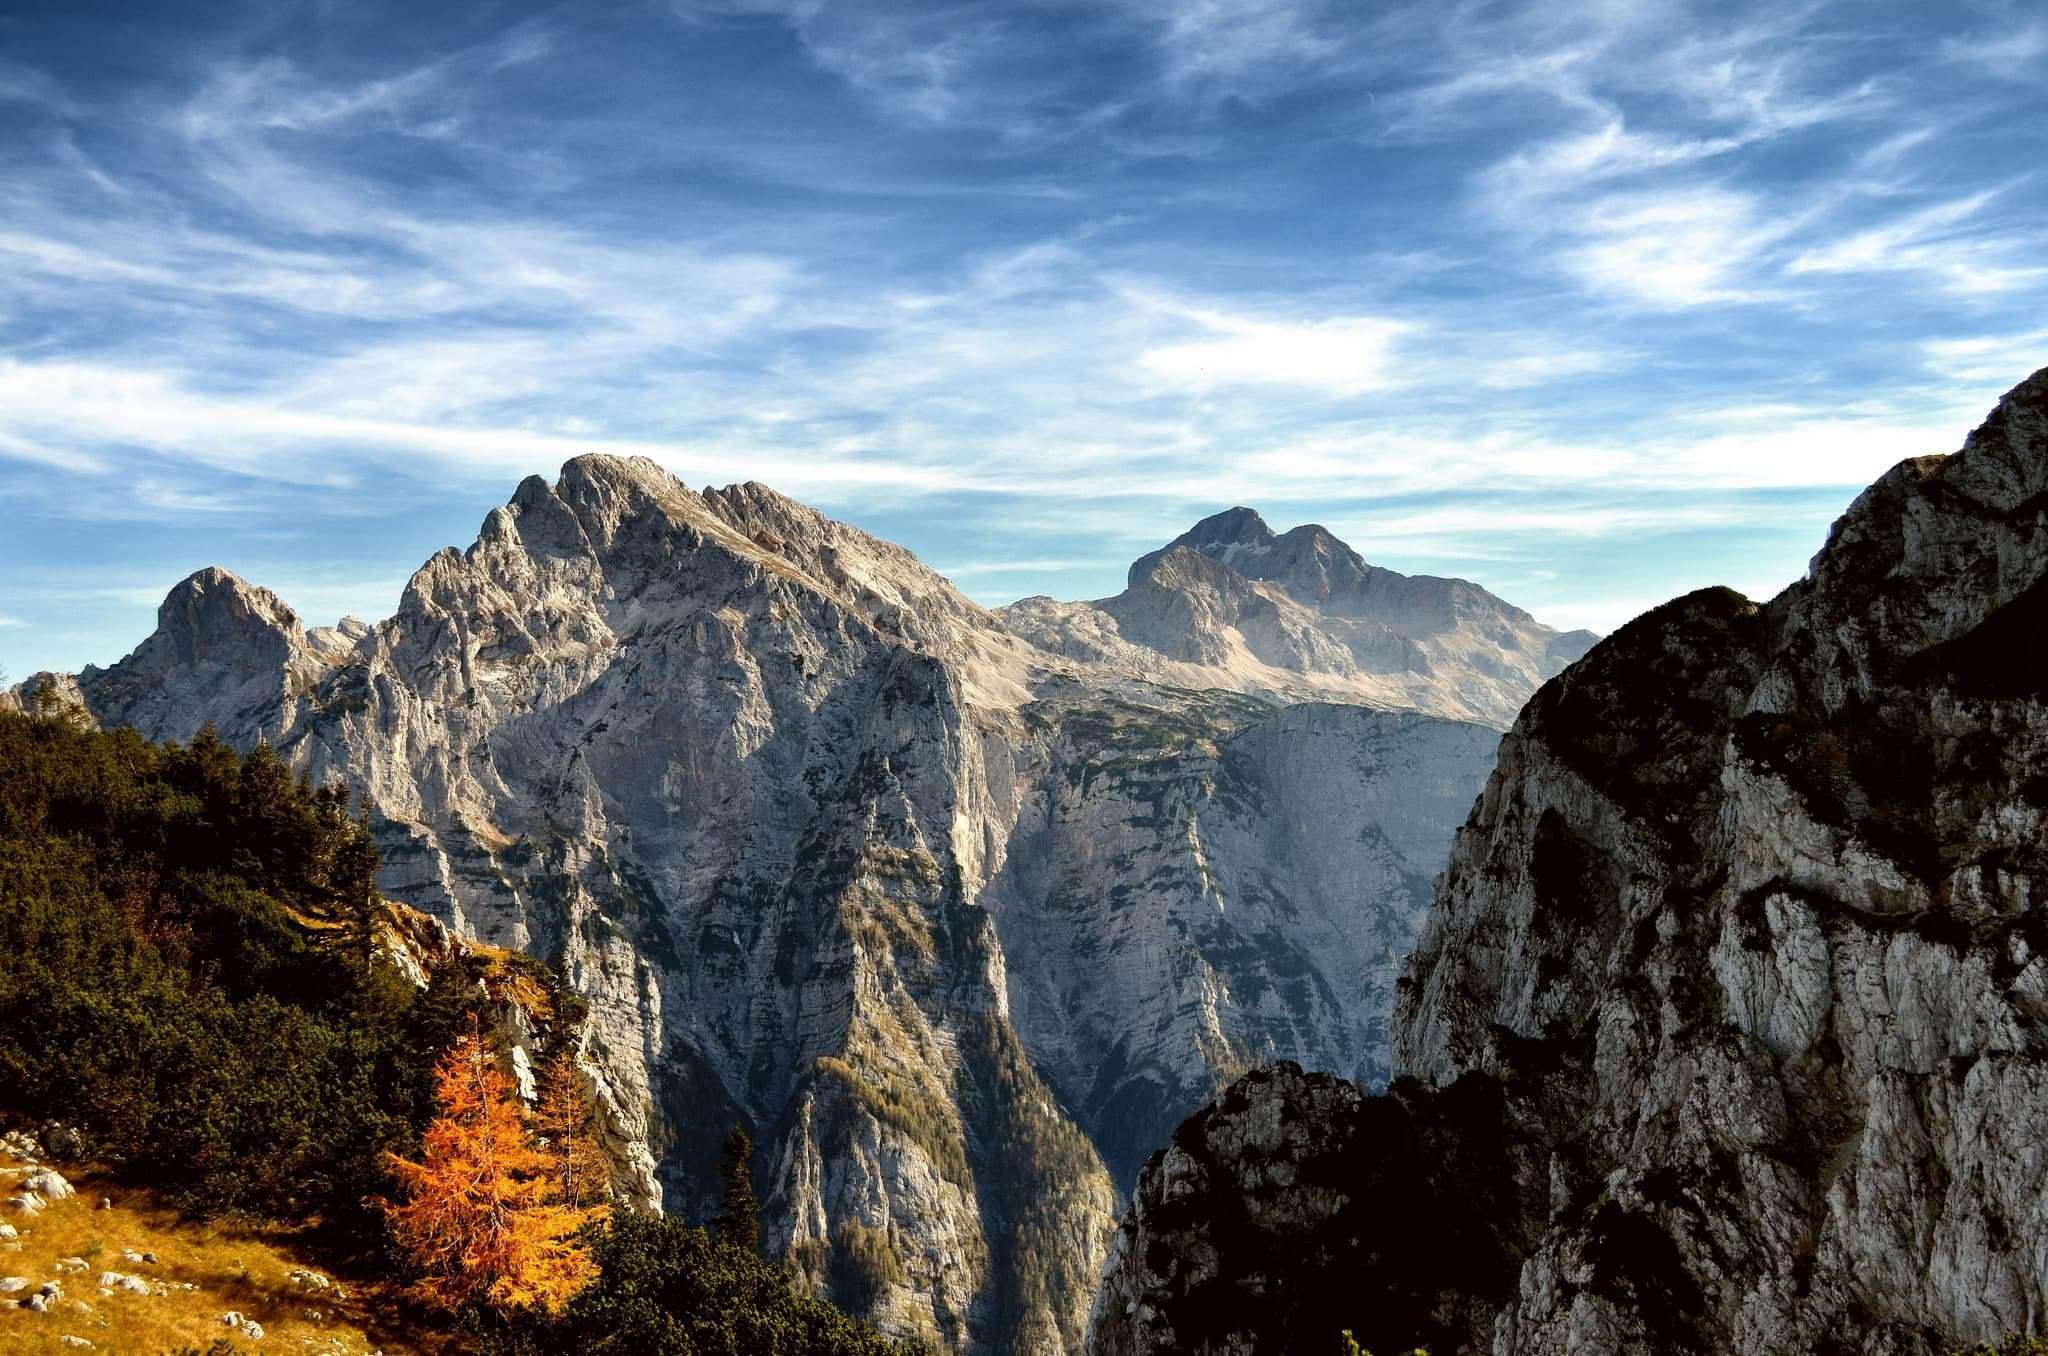 03_mountain_Triglav.jpg